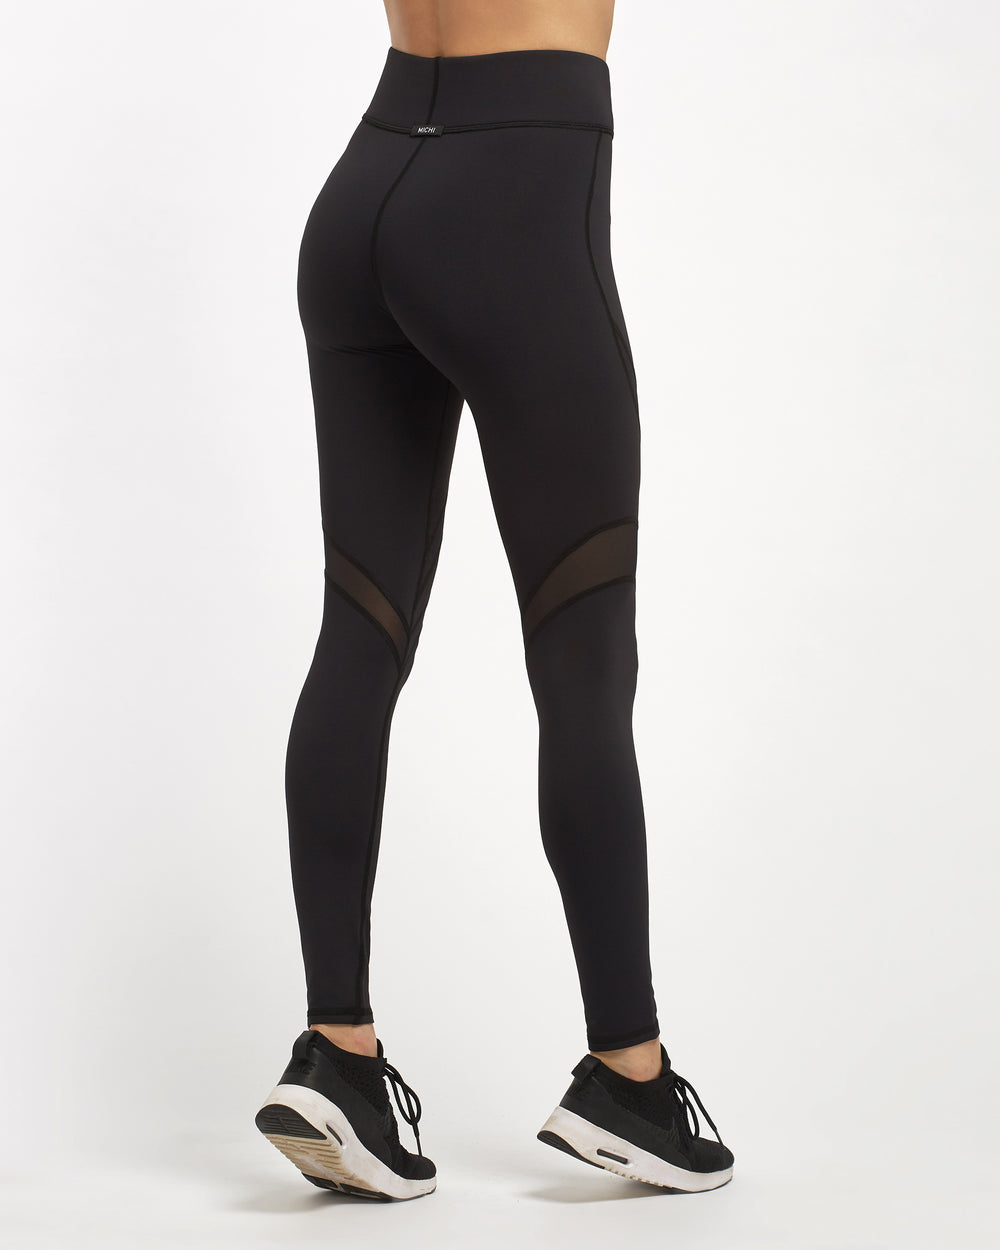 Psyche Legging - Black